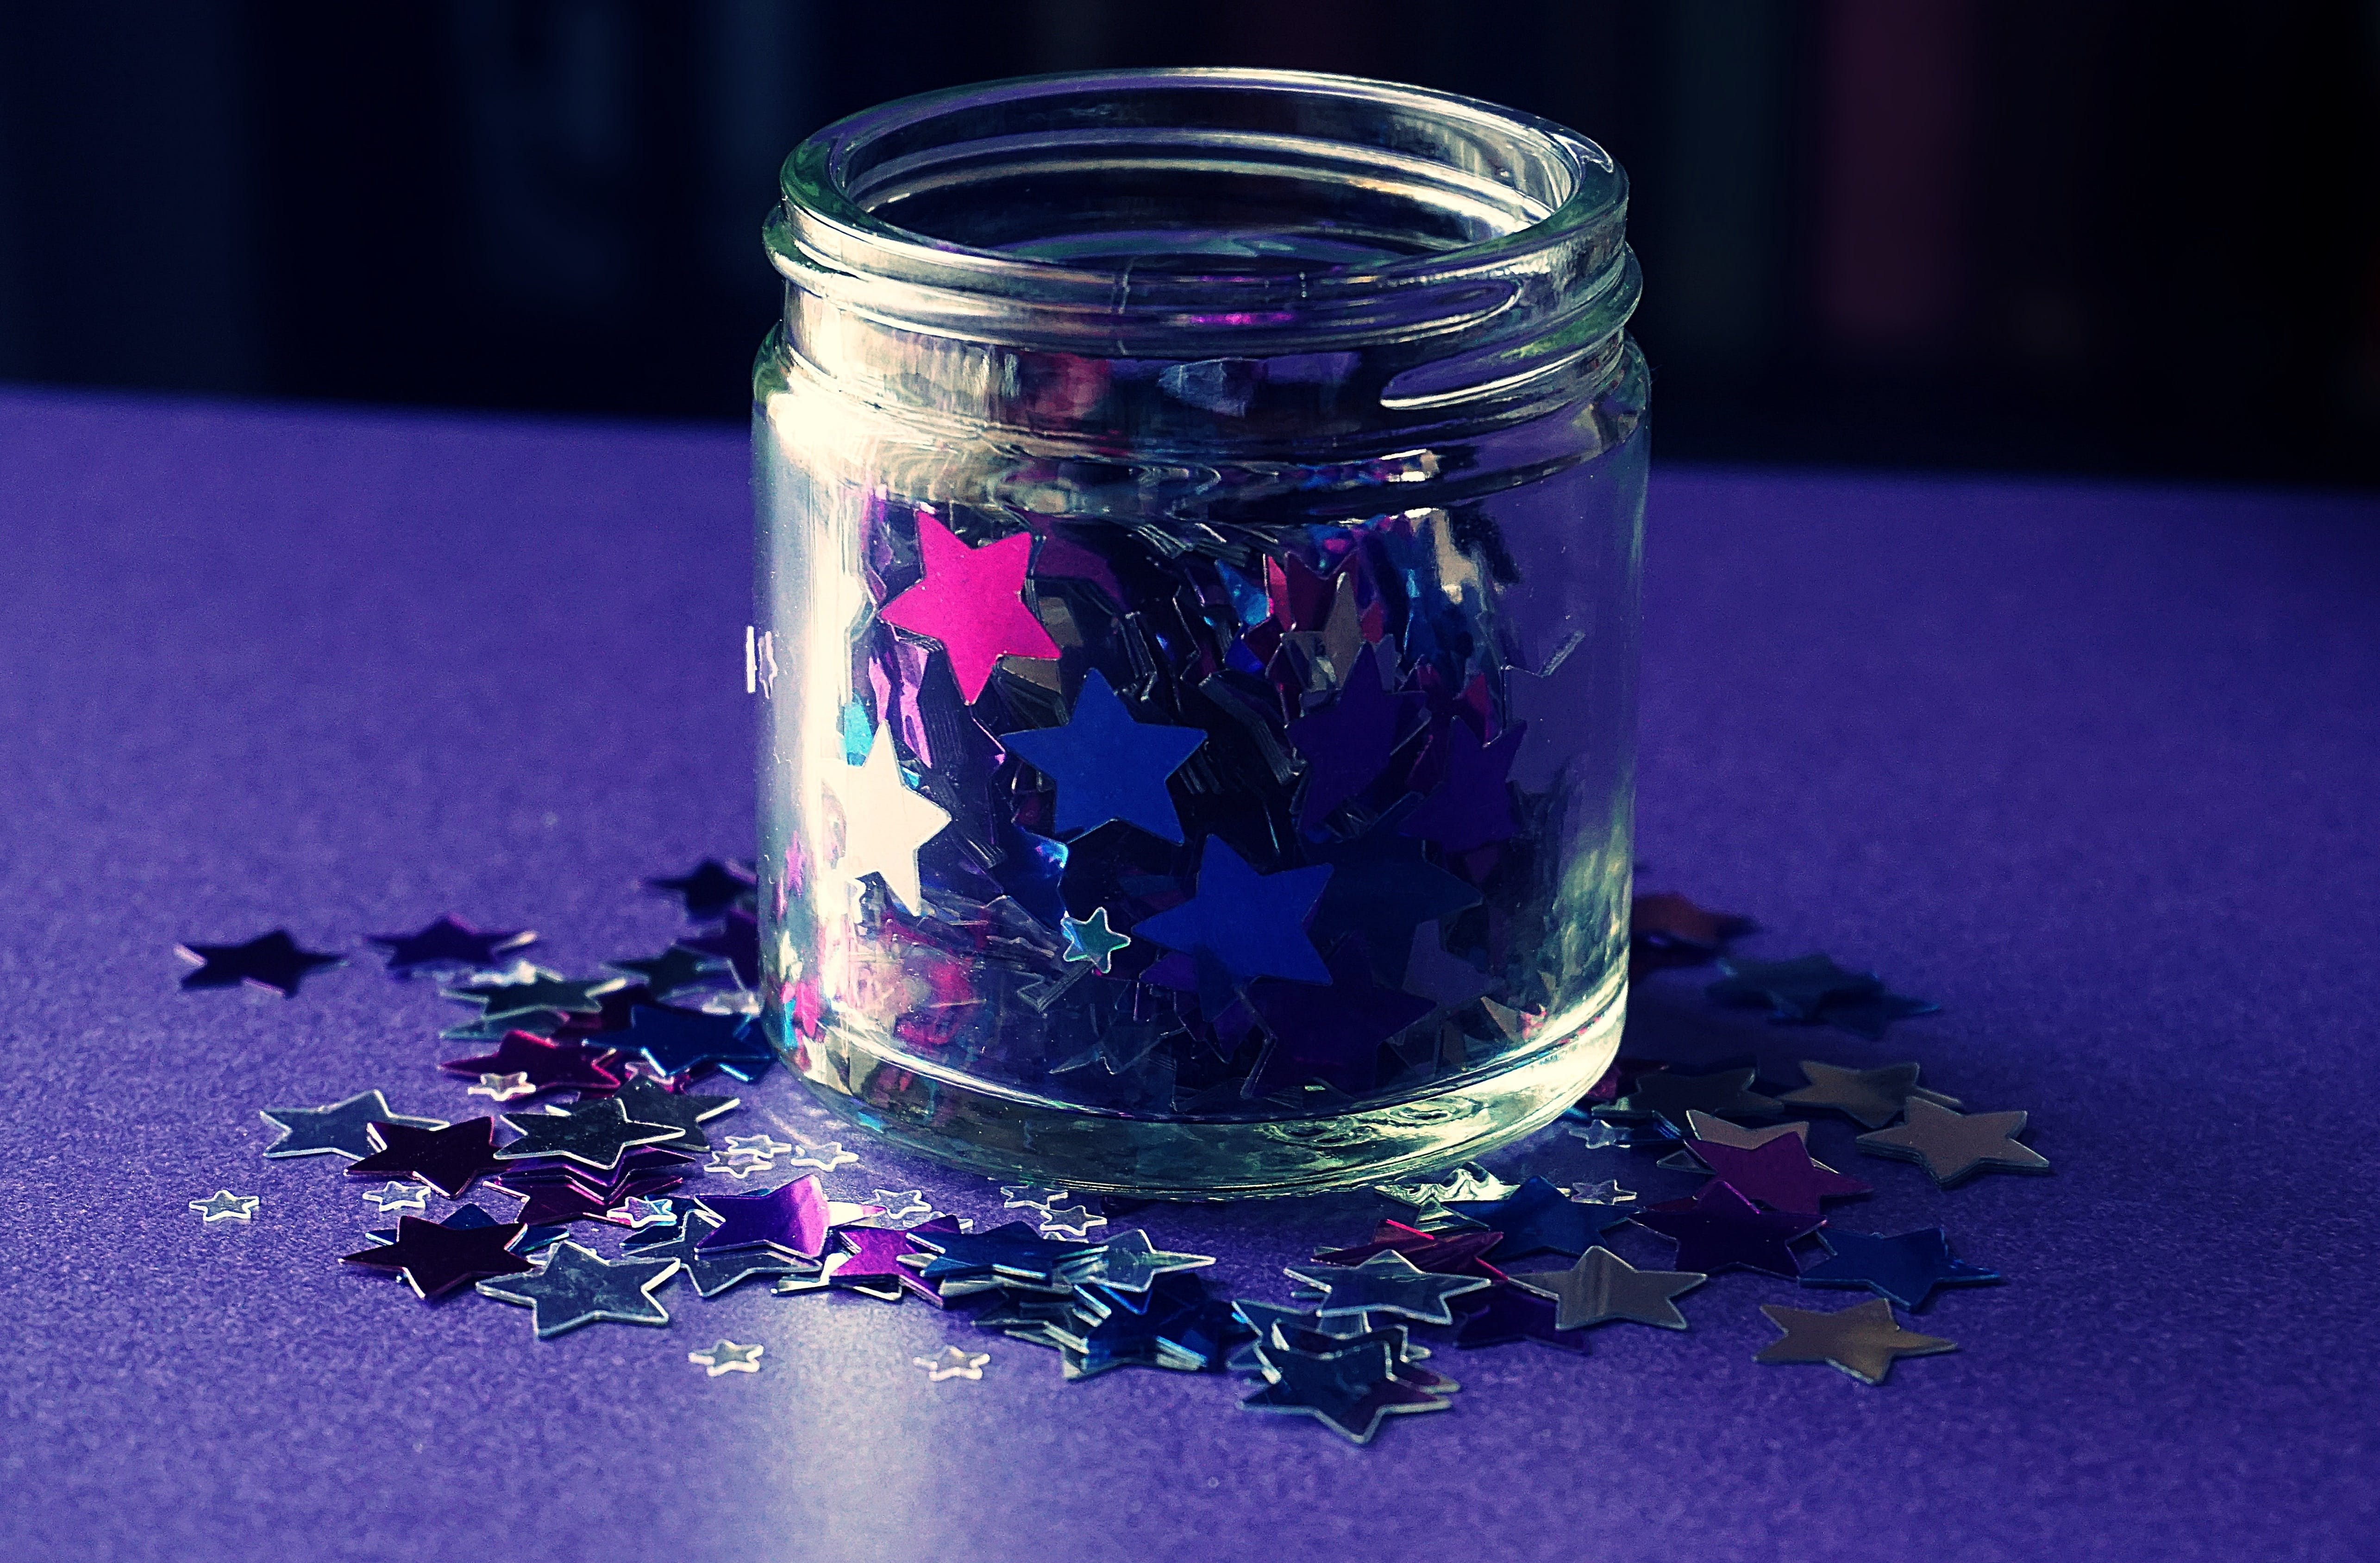 Star Shaped Glitter in a Jar